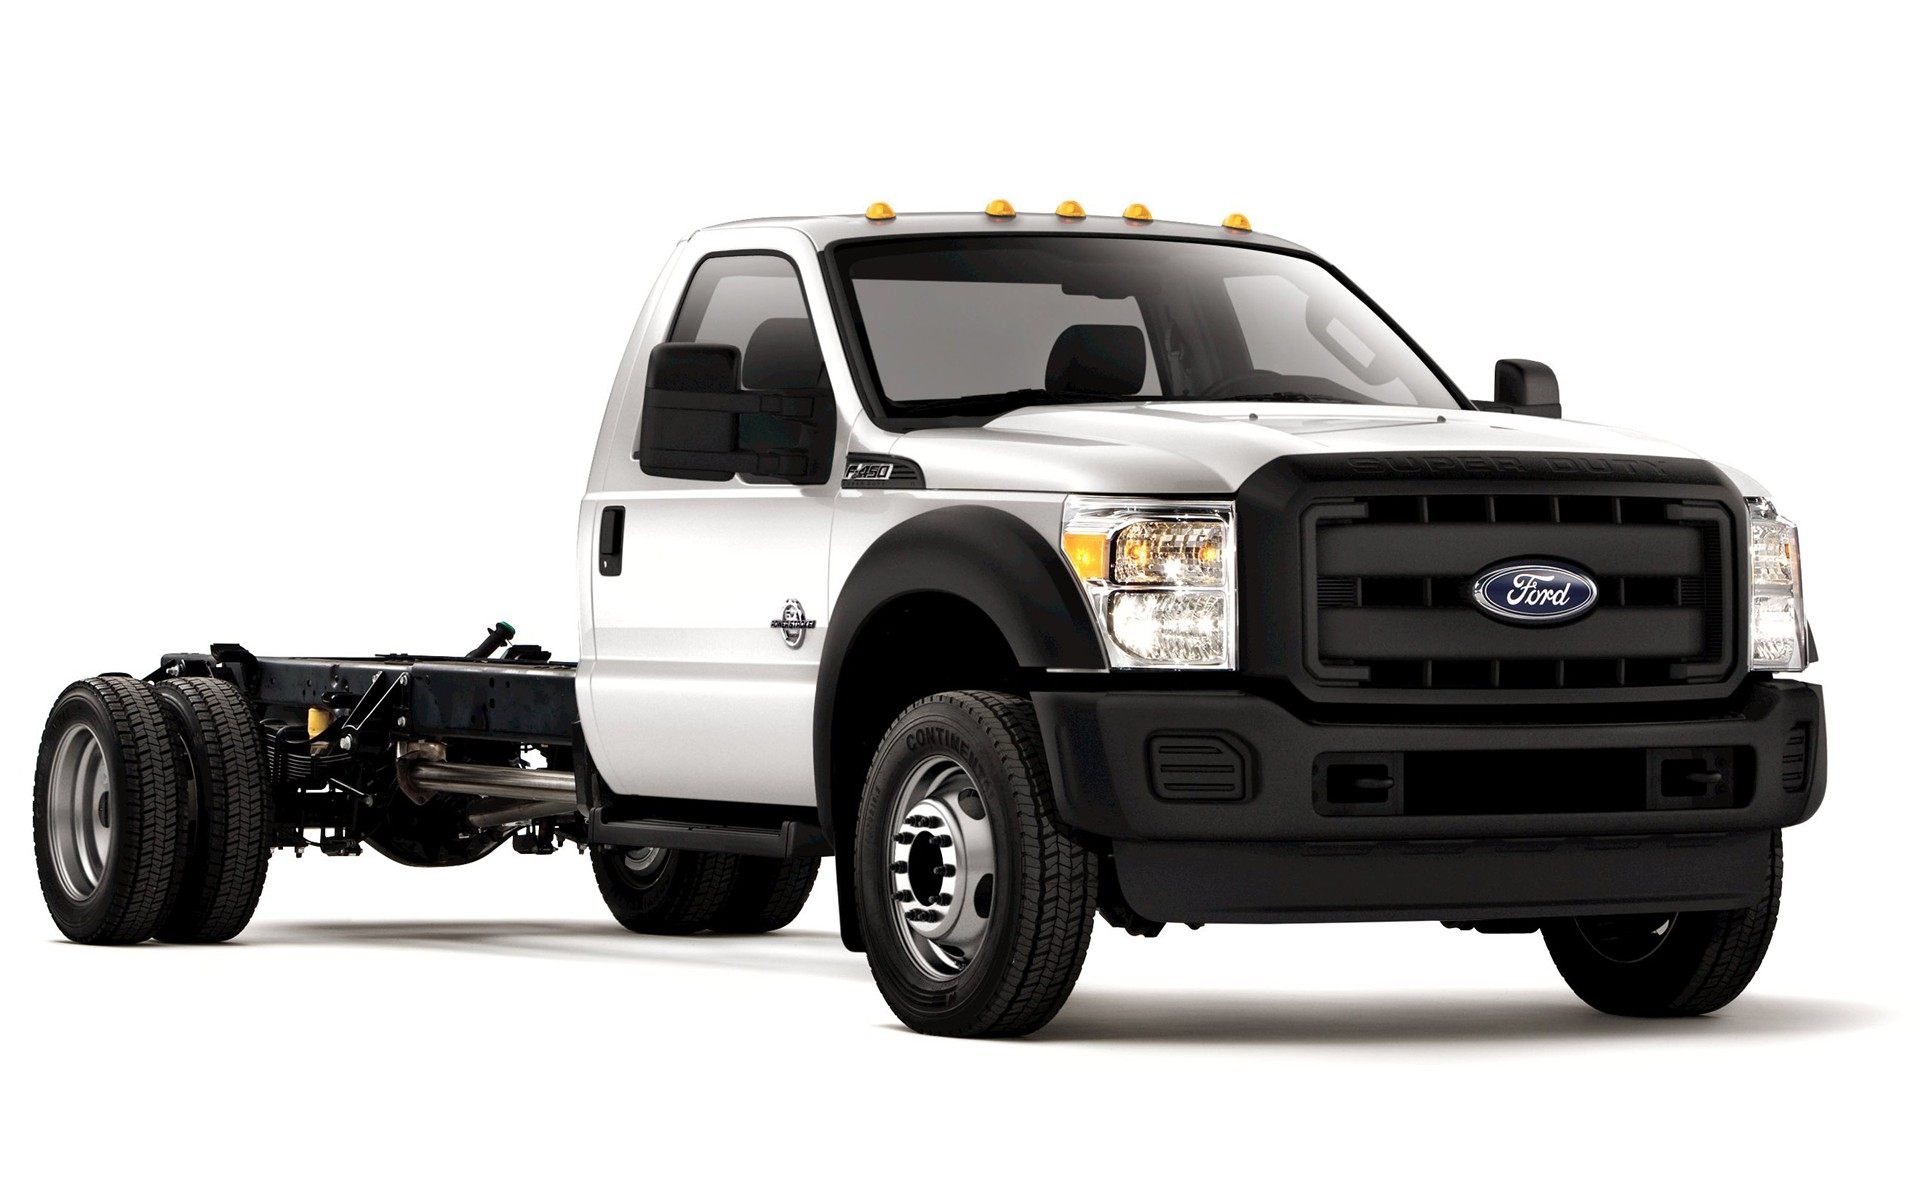 2011 Ford F-450 Super Duty #3